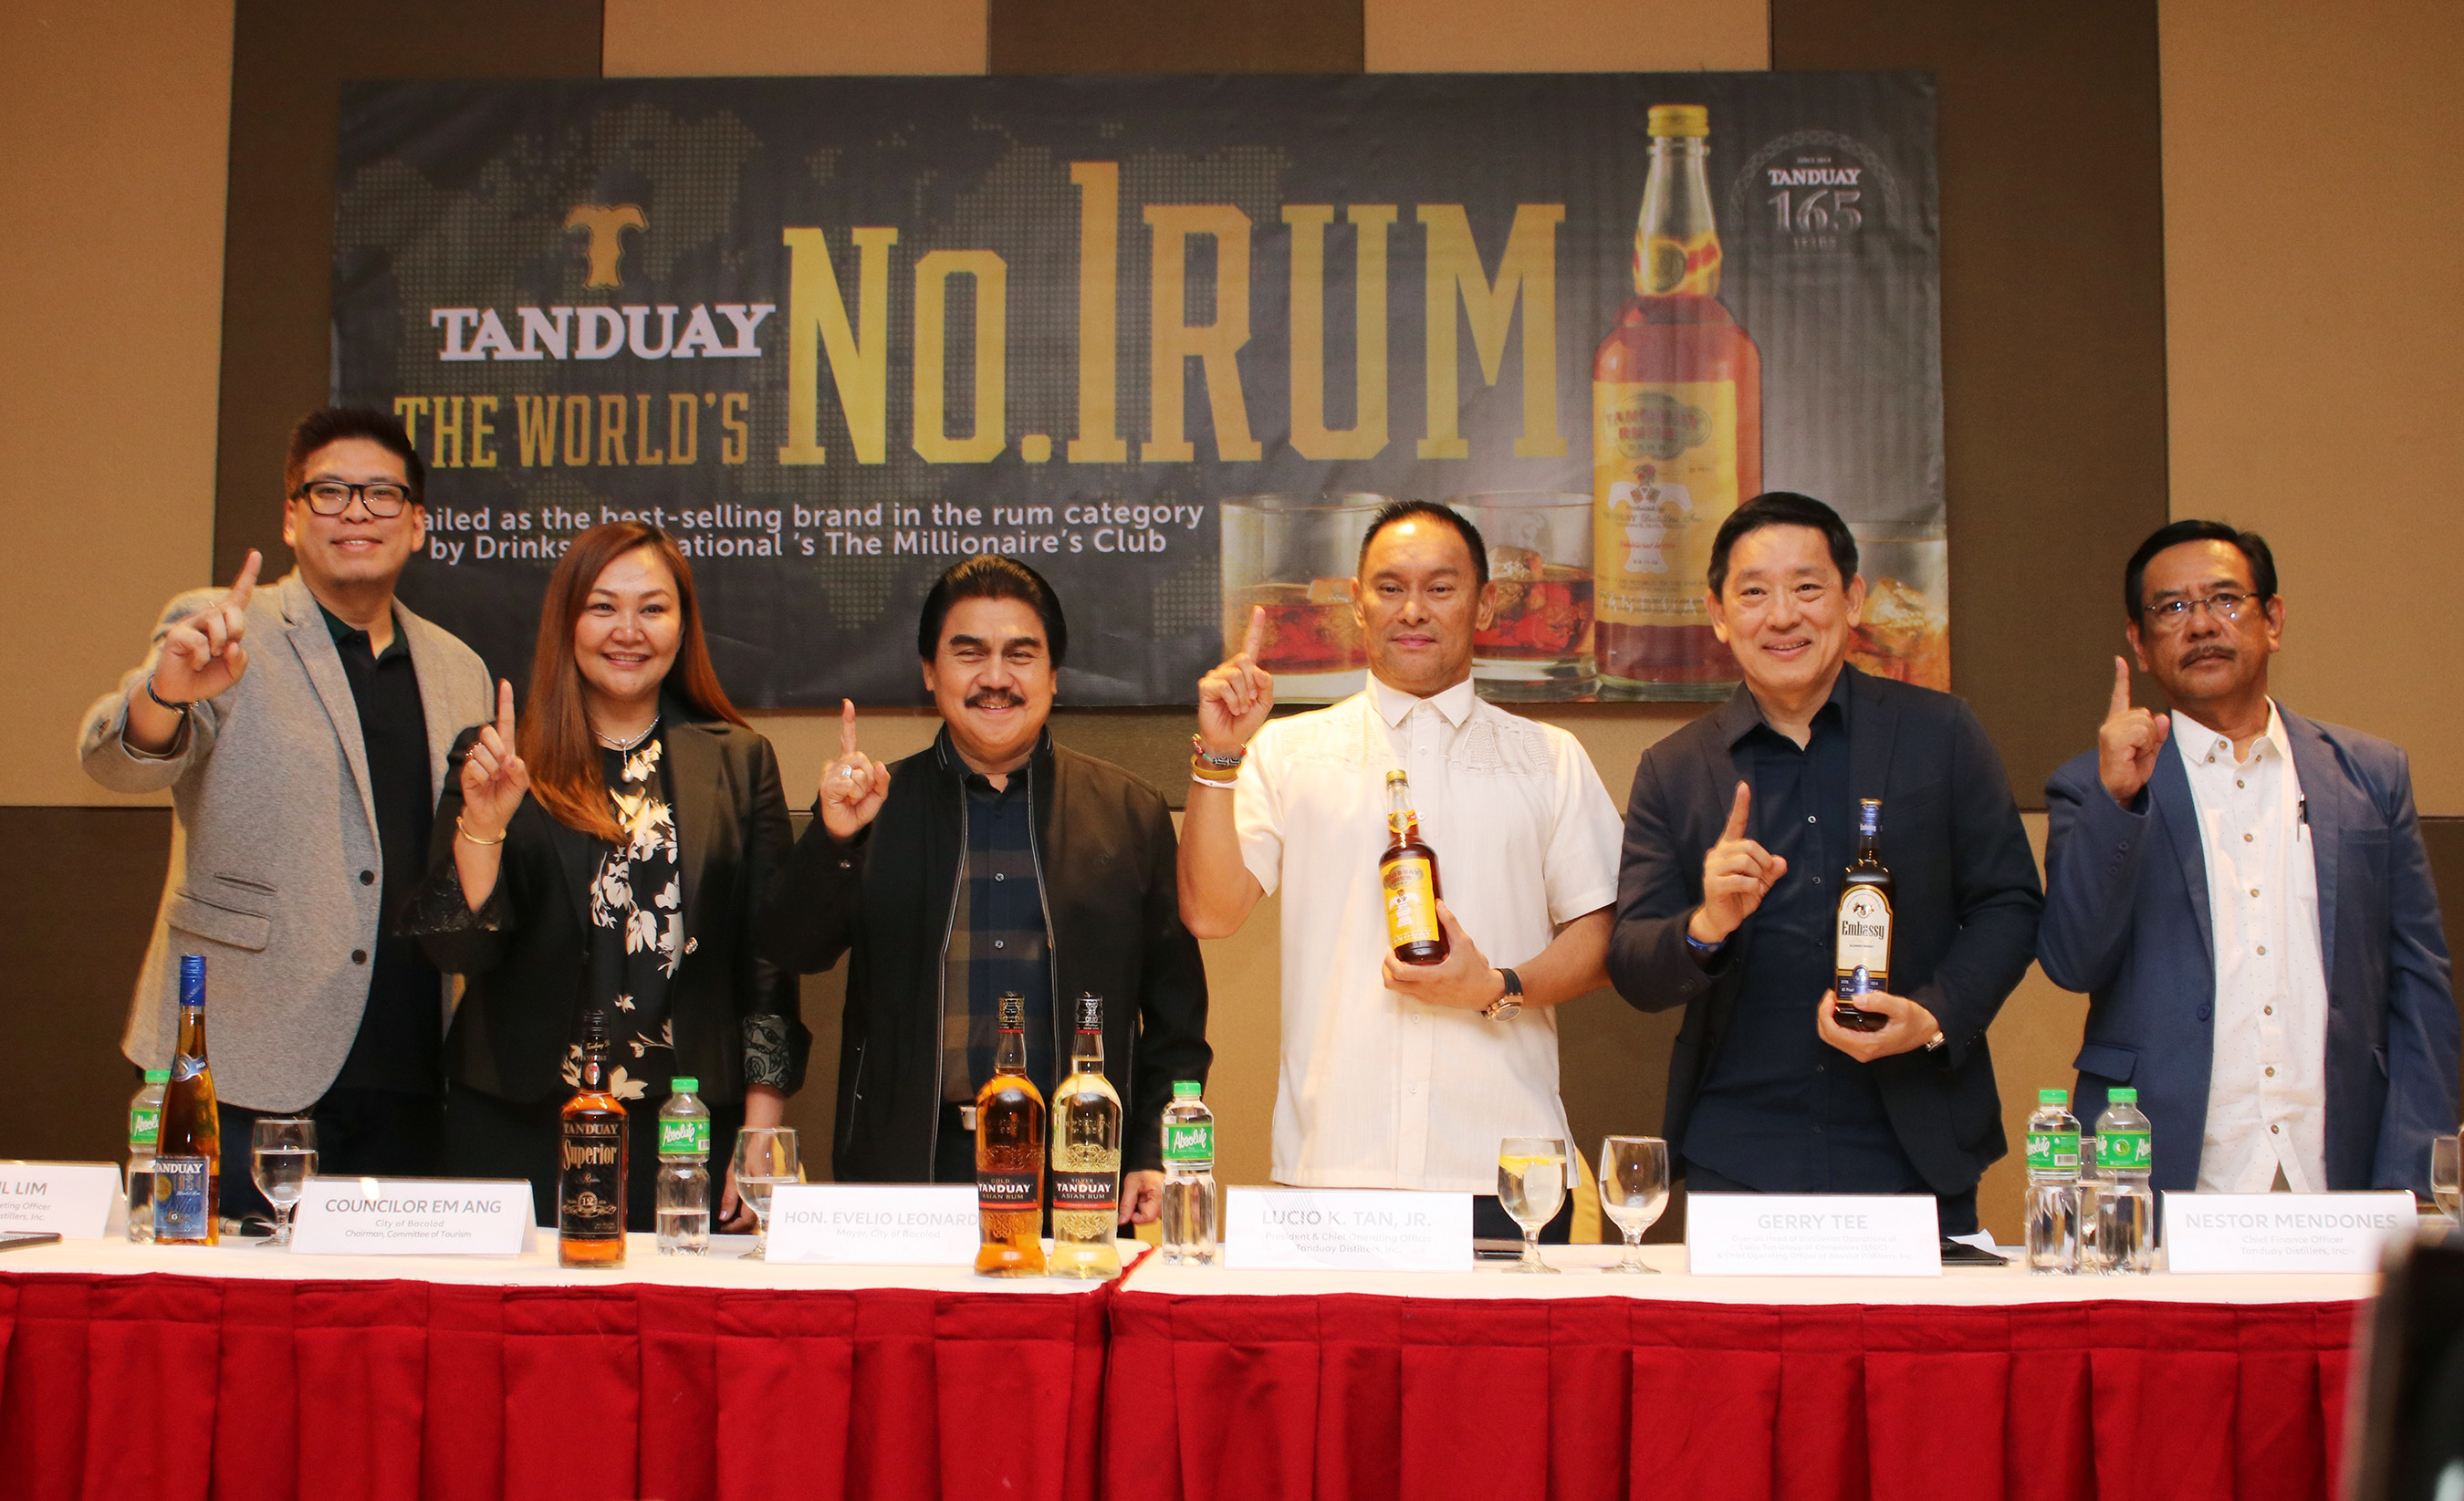 For the 2nd straight year, 165-year-old Tanduay has maintained its position as the world's number #1 rum by volume as determined by Drinks International, outperforming all other rum brands including Bacardi, with 20.1M 9L cases sold.